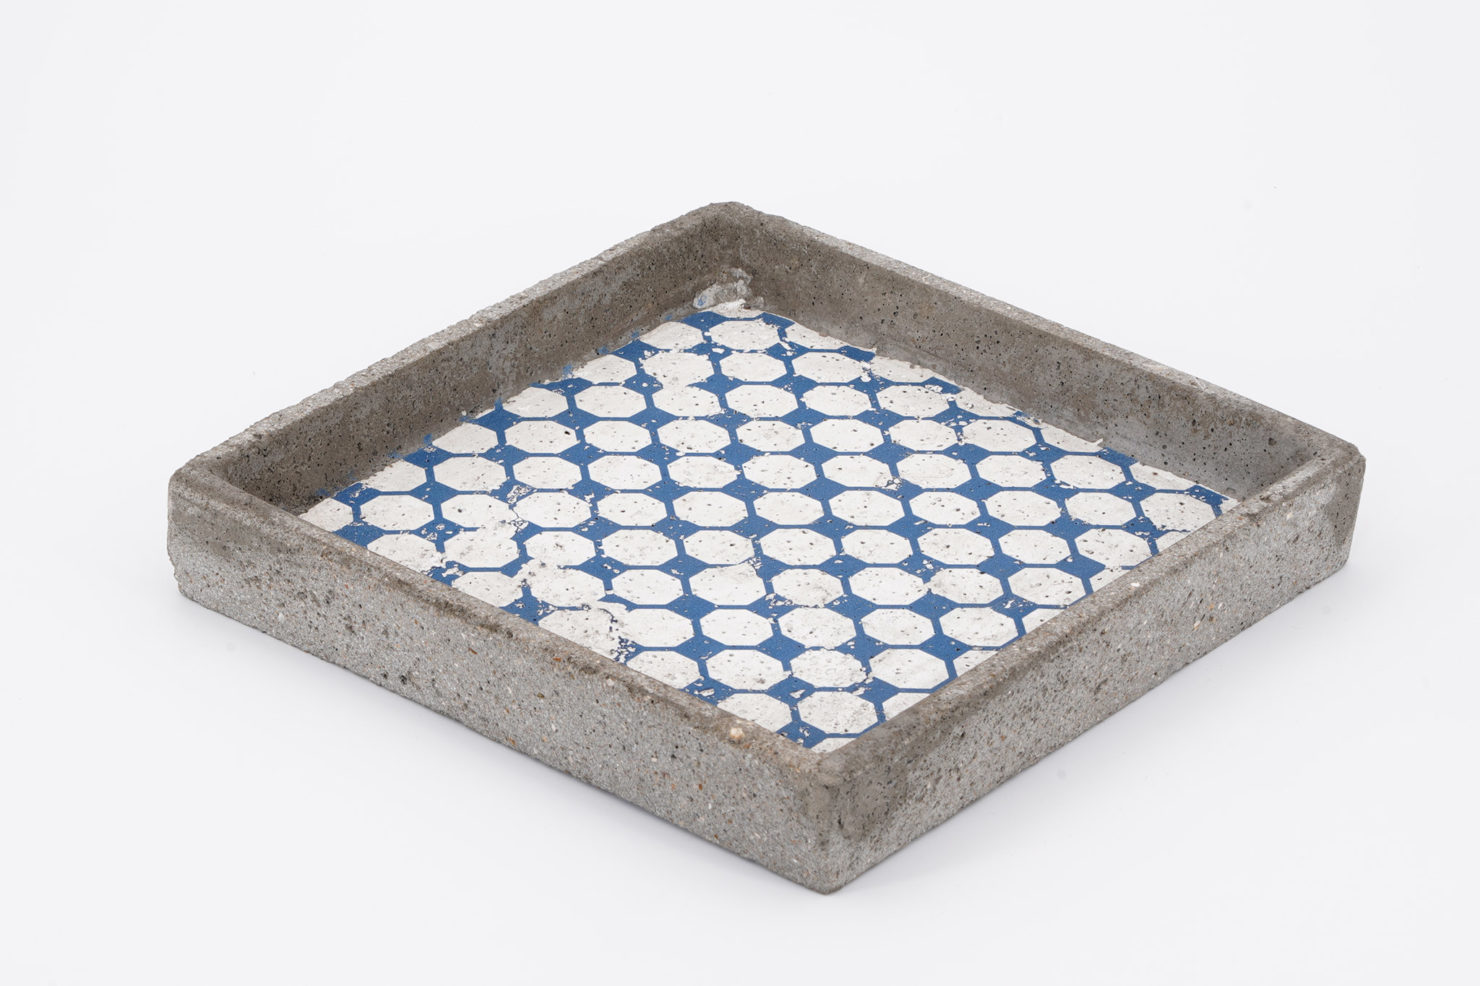 TRAY BLUE CONCRETE 20X20 CM - BY ROOM